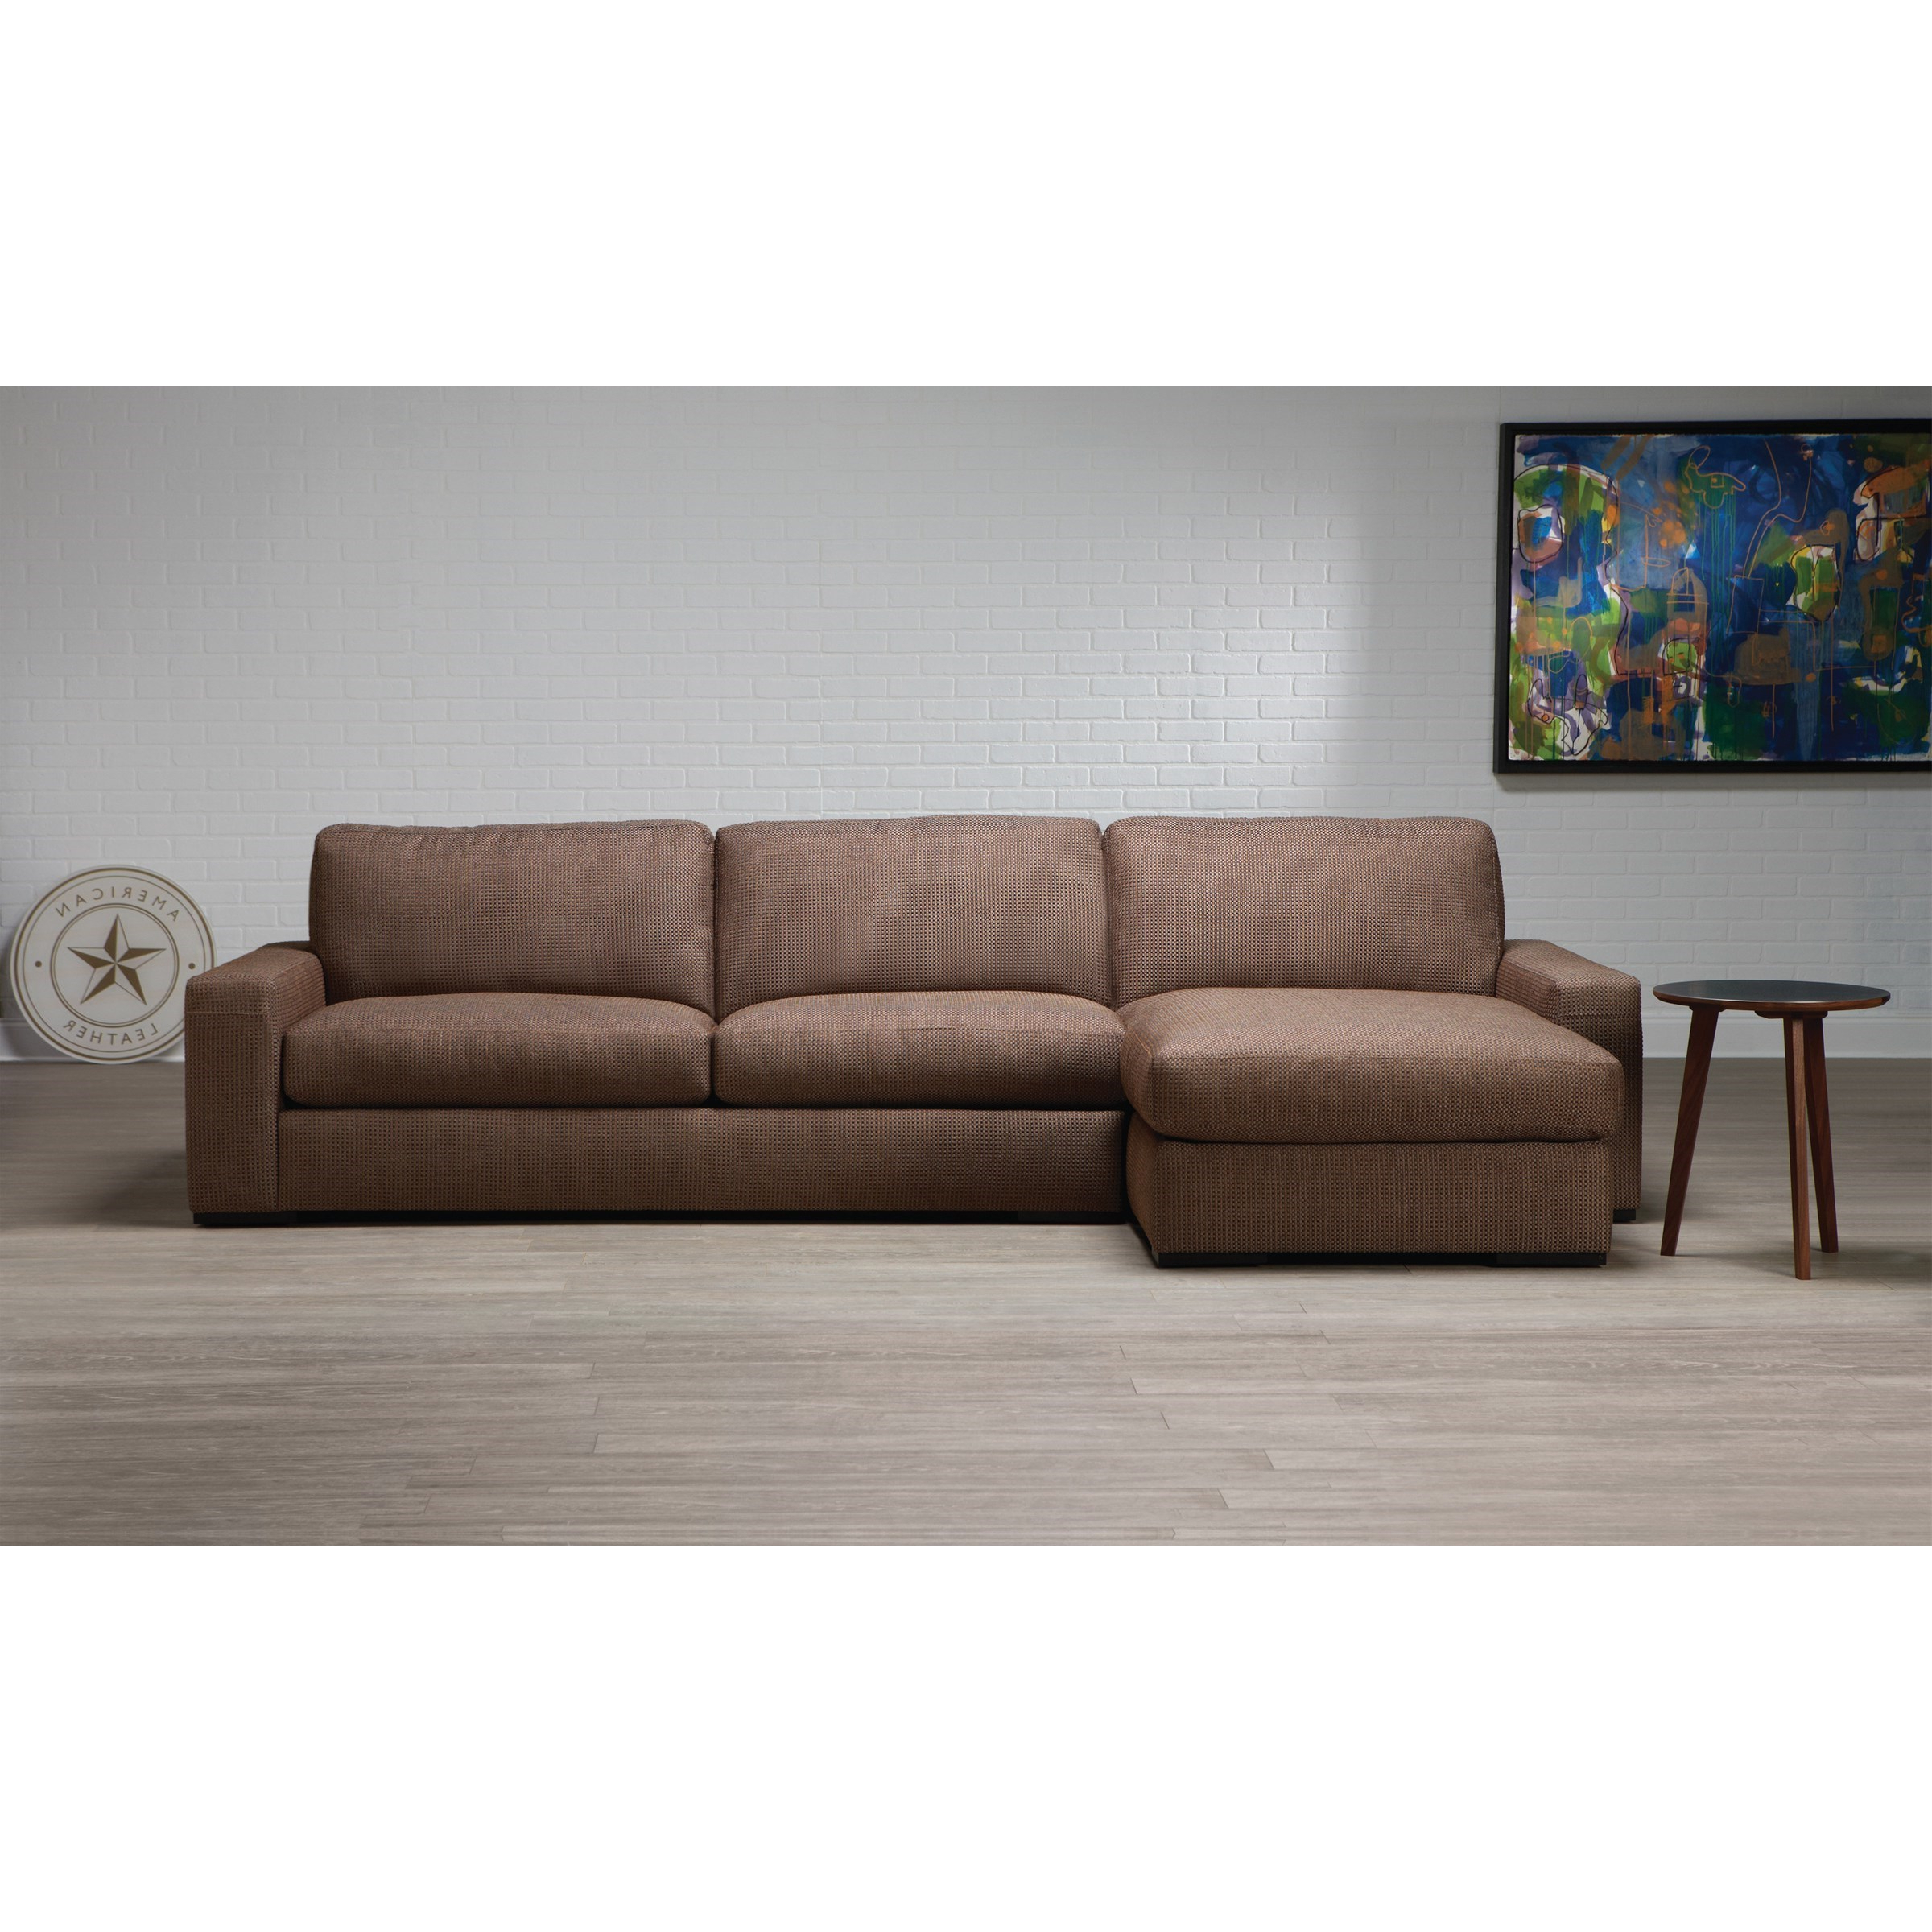 Preferred American Leather Westchester Contemporary 2 Piece Within 2Pc Connel Modern Chaise Sectional Sofas Black (View 11 of 25)